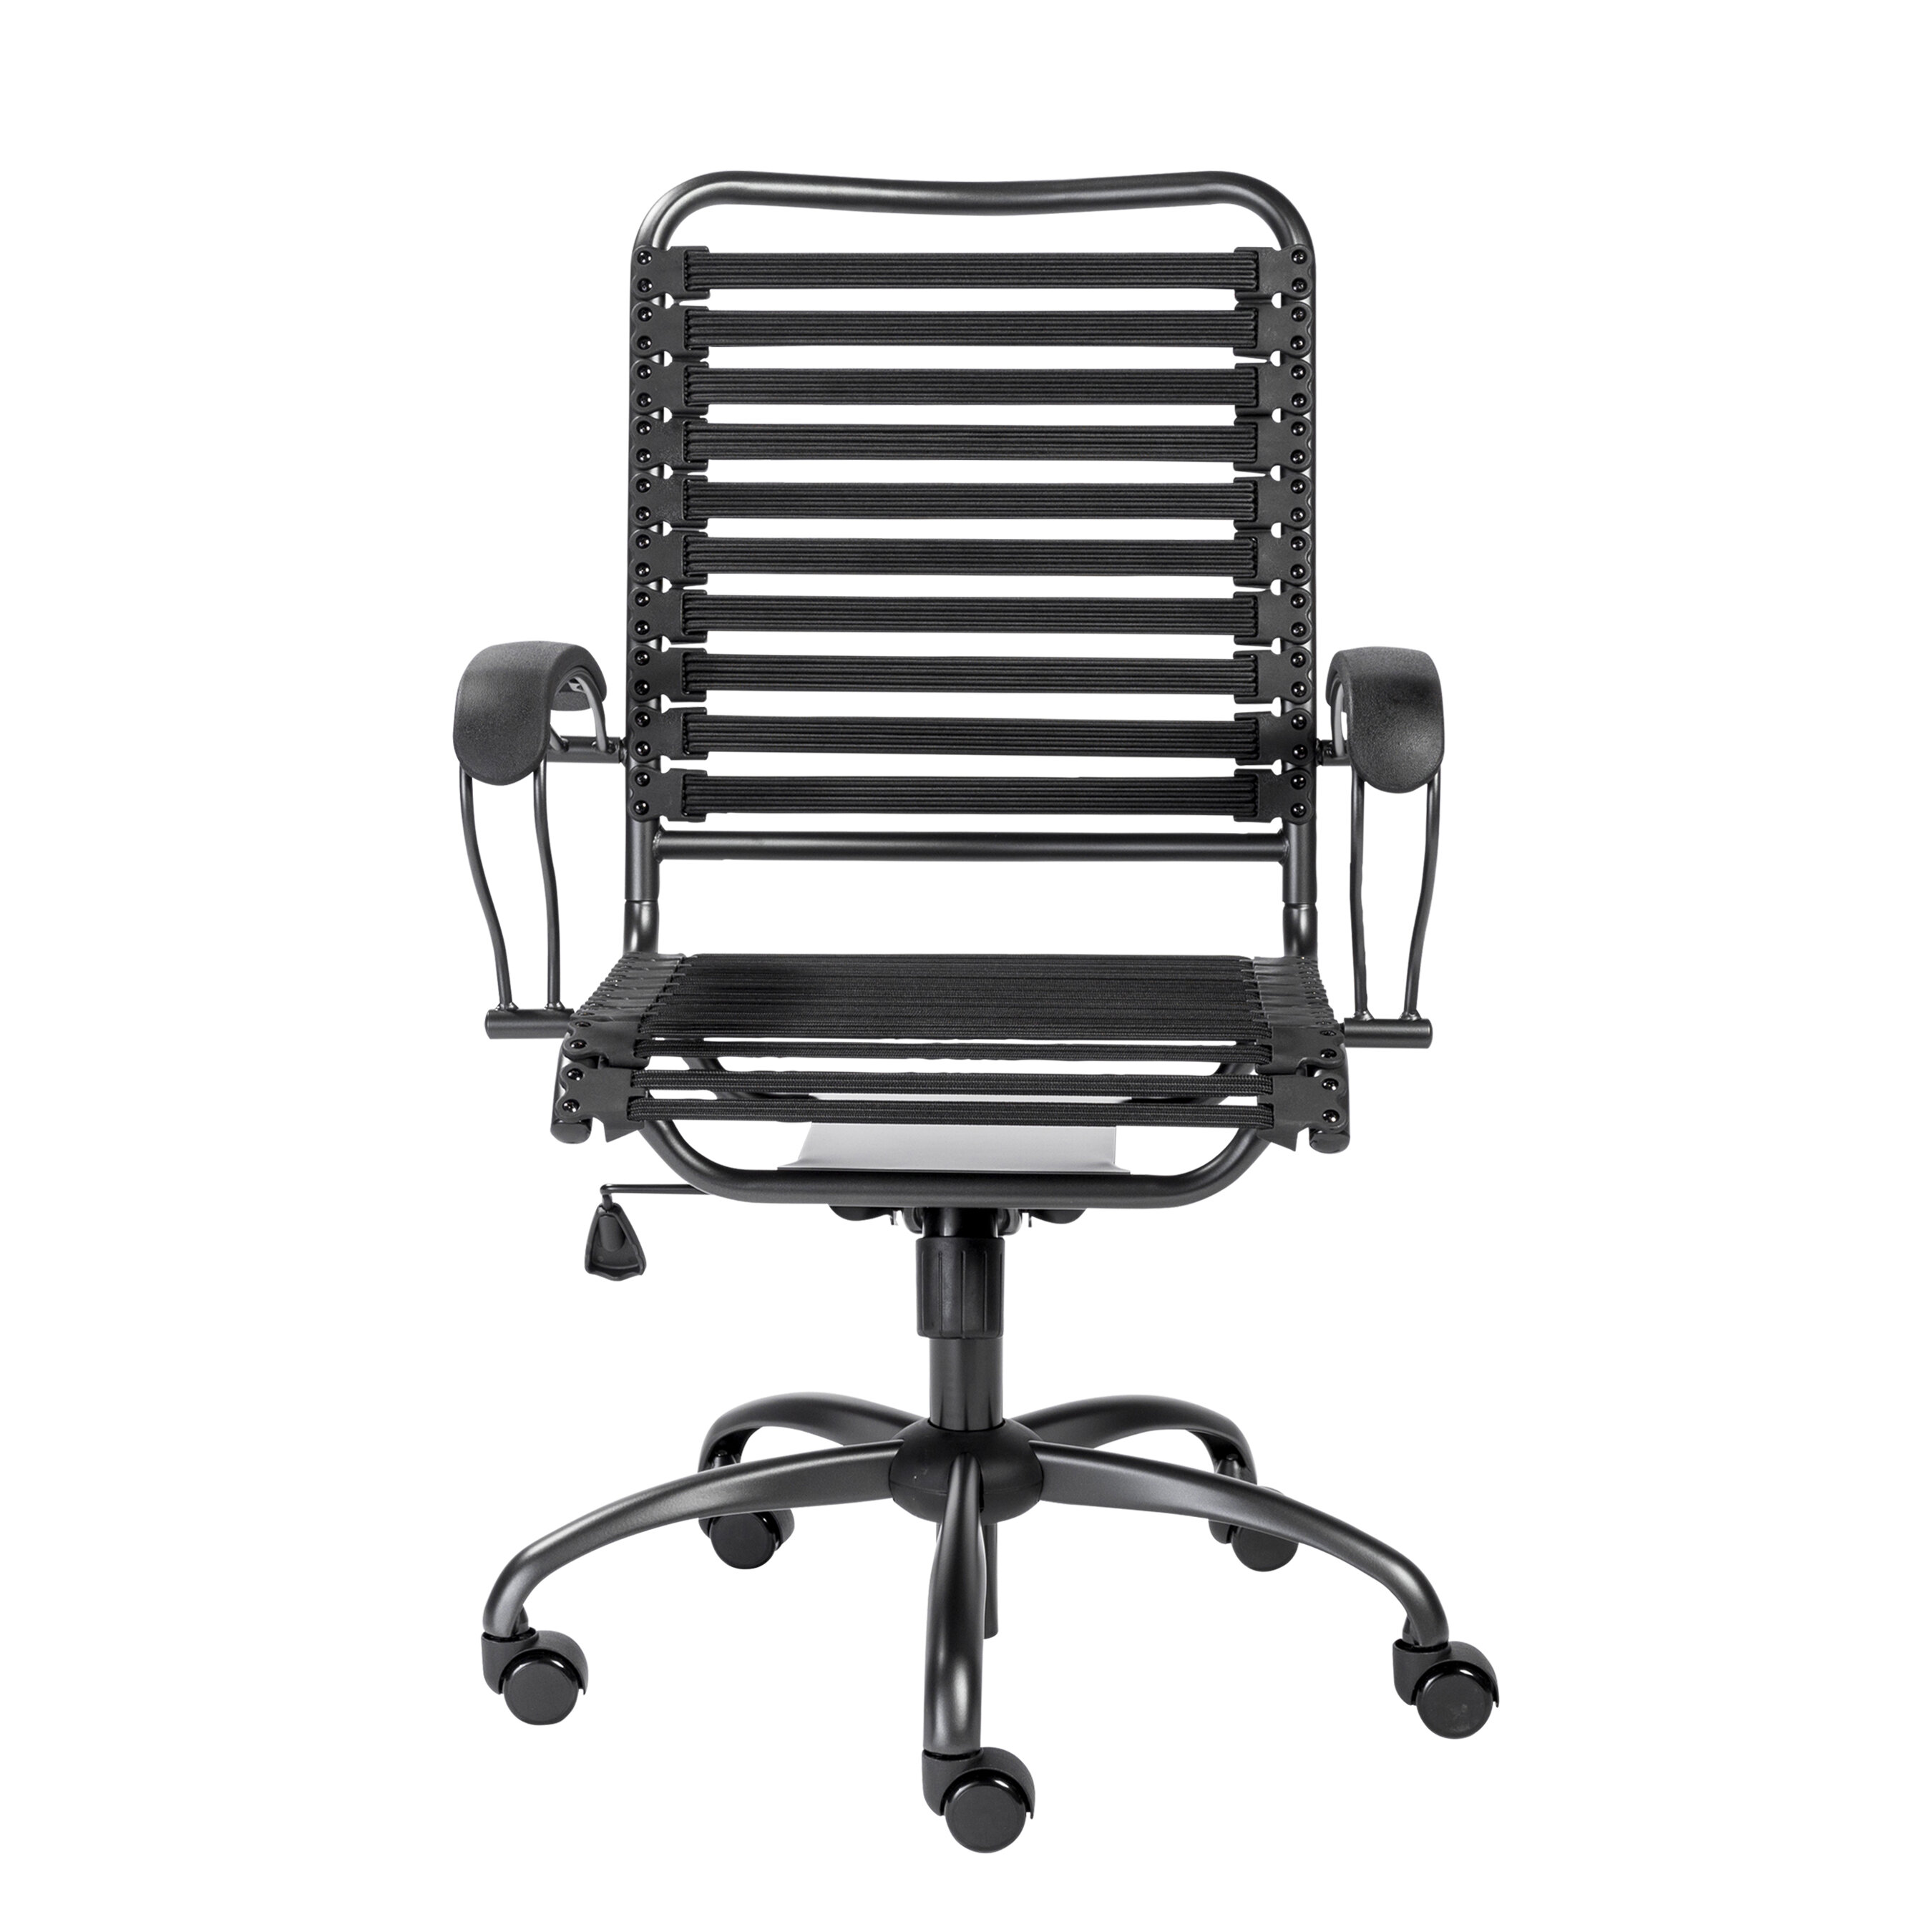 Orren Ellis Amico High Back Bungee Desk Chair | Wayfair